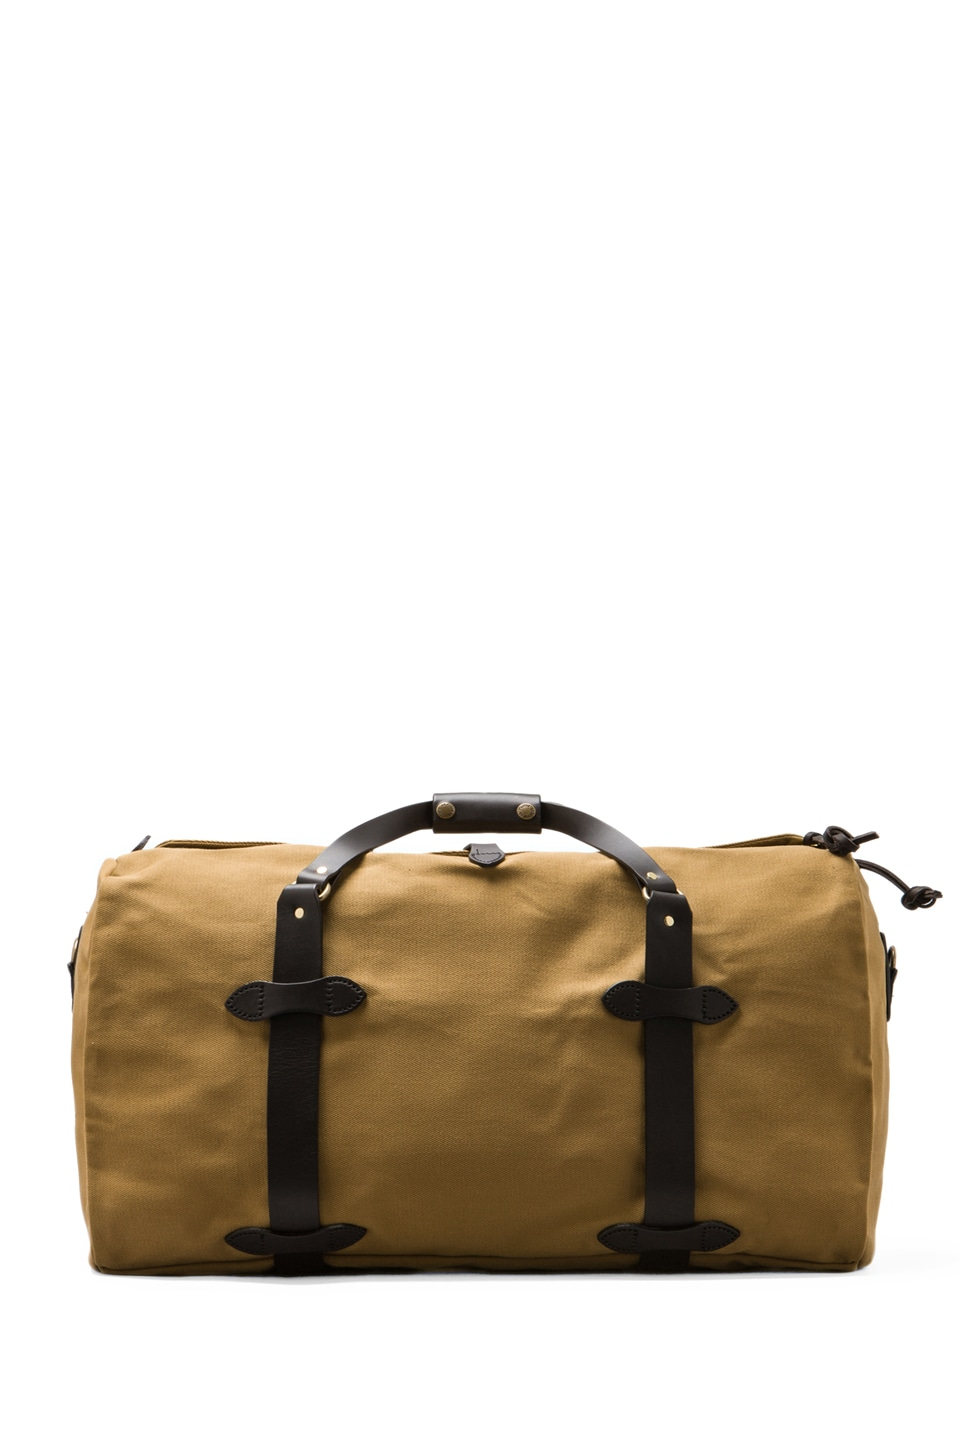 Filson Medium Duffle in Tan